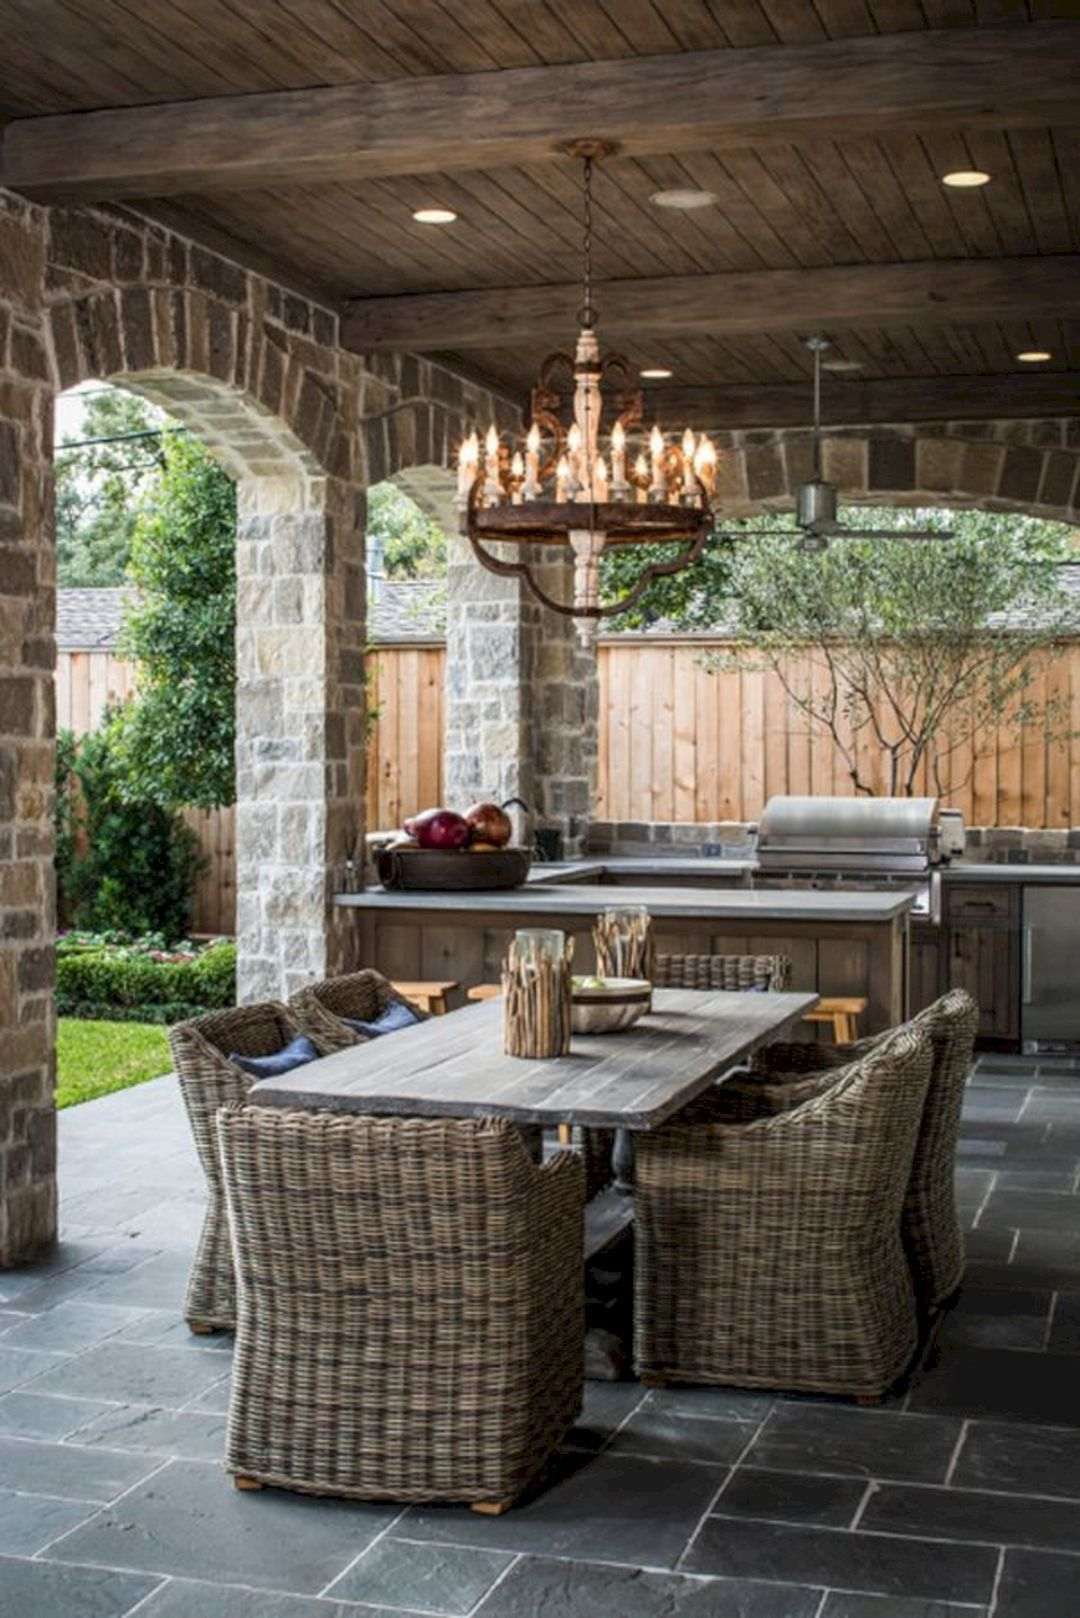 Best Ideas French Country Style Home Designs 37 Best: Best Ideas French Country Style Home Designs 26 (Best